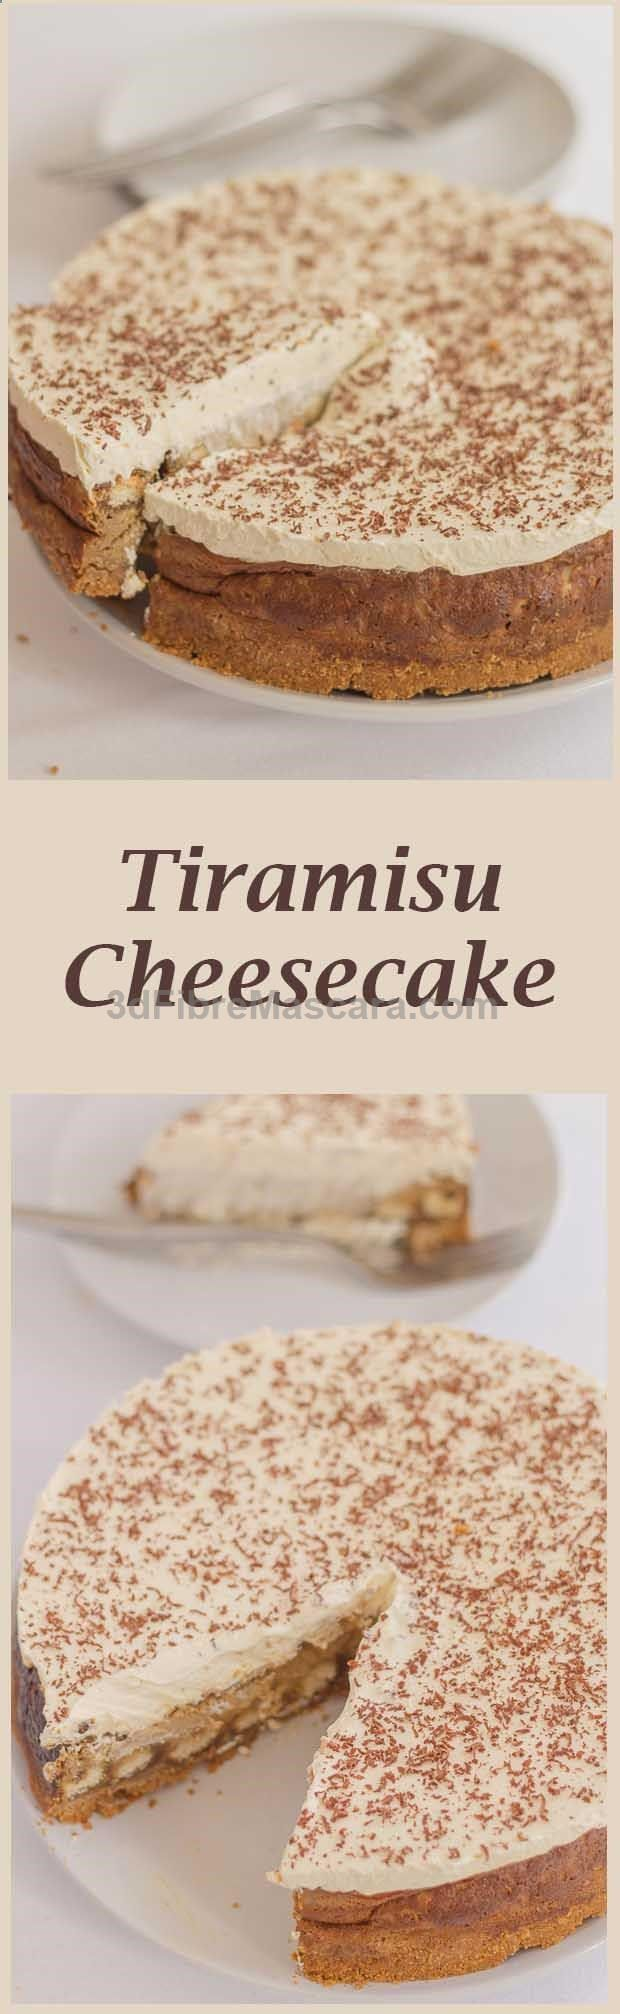 Here, the delicious Italian coffee-flavoured dessert is made into an equally delicious cheesecake. Still indulgent and heavenly tasting, but with a reduced calorific content. #diet #dieting #lowcalories #dietplan #excercise #diabetic #diabetes #slimming #weightloss #loseweight #loseweightfast